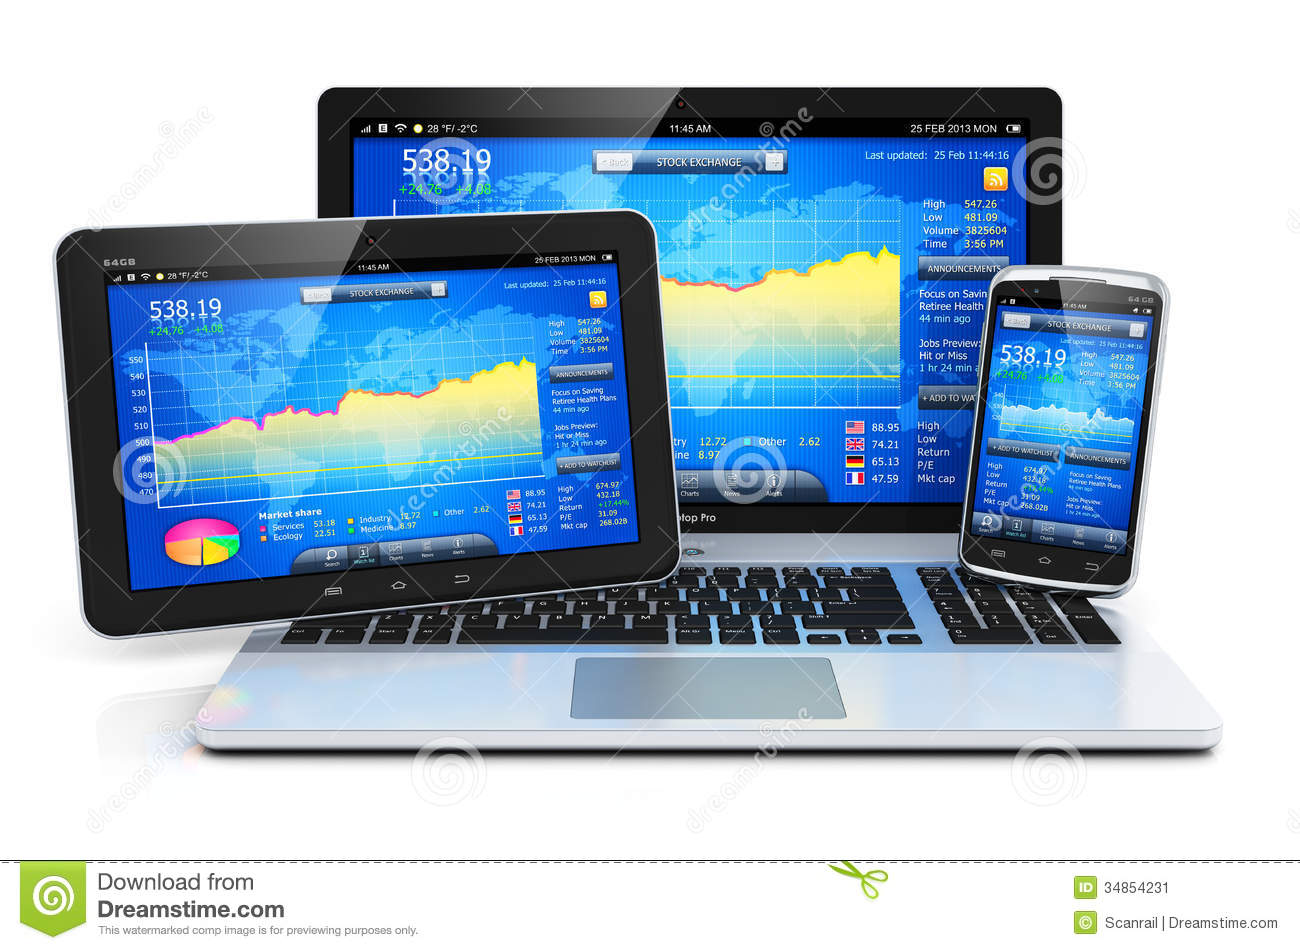 Financial Management On Mobile Devices Stock Image - Image: 34854231